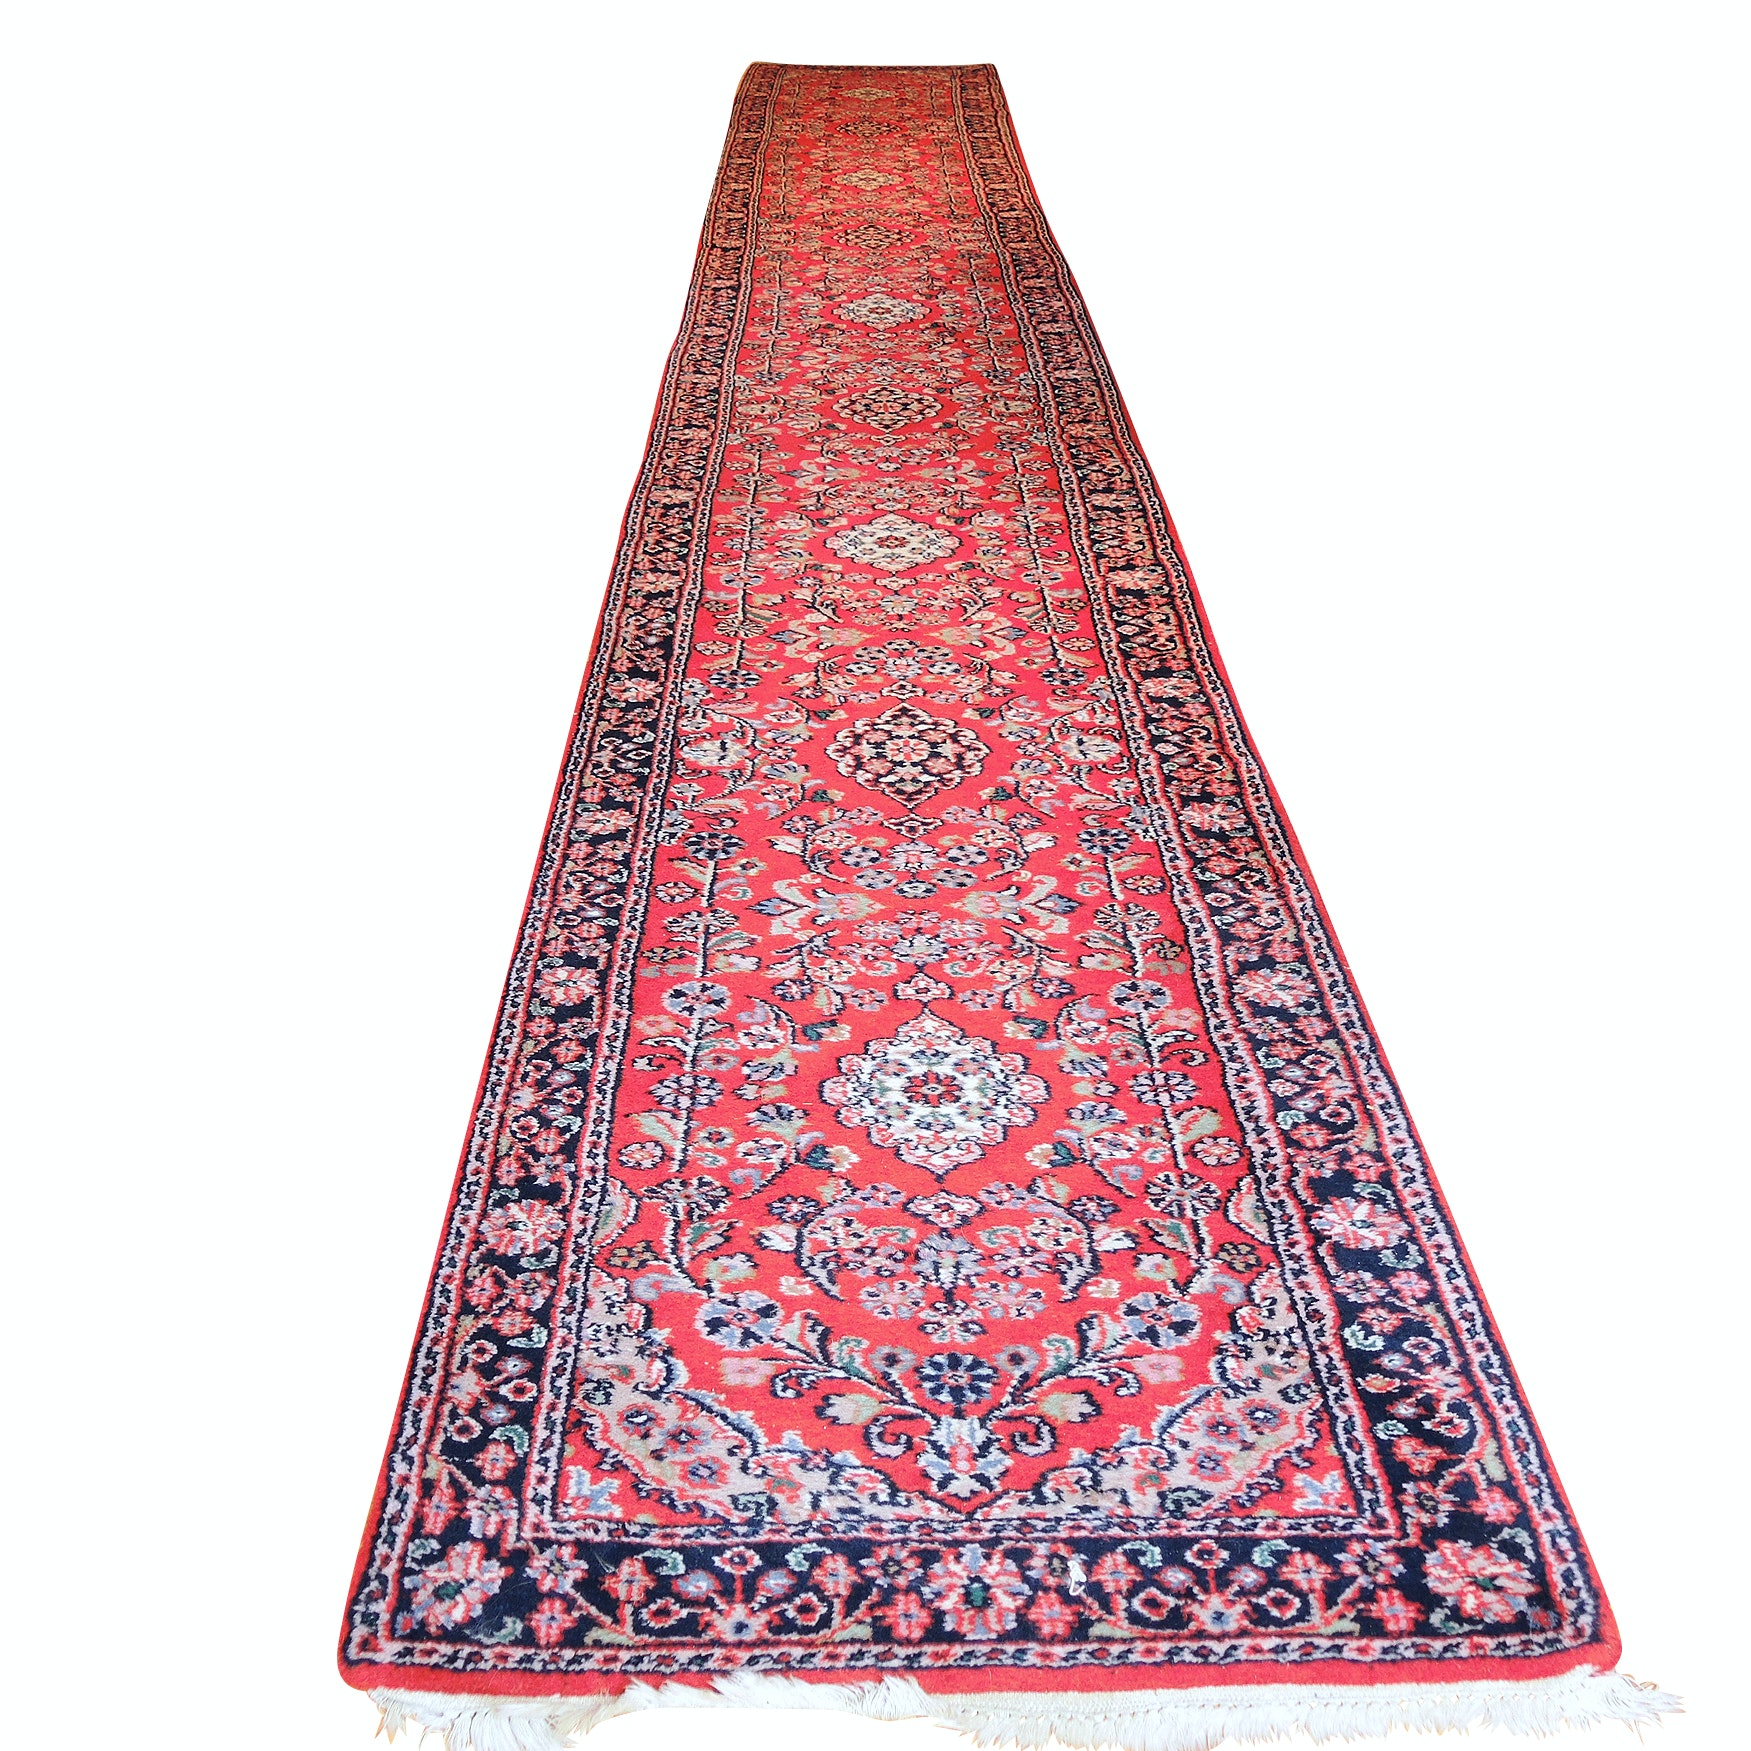 Finely Hand-Knotted Indo-Persian Meshed Wool Stair or Carpet Runner